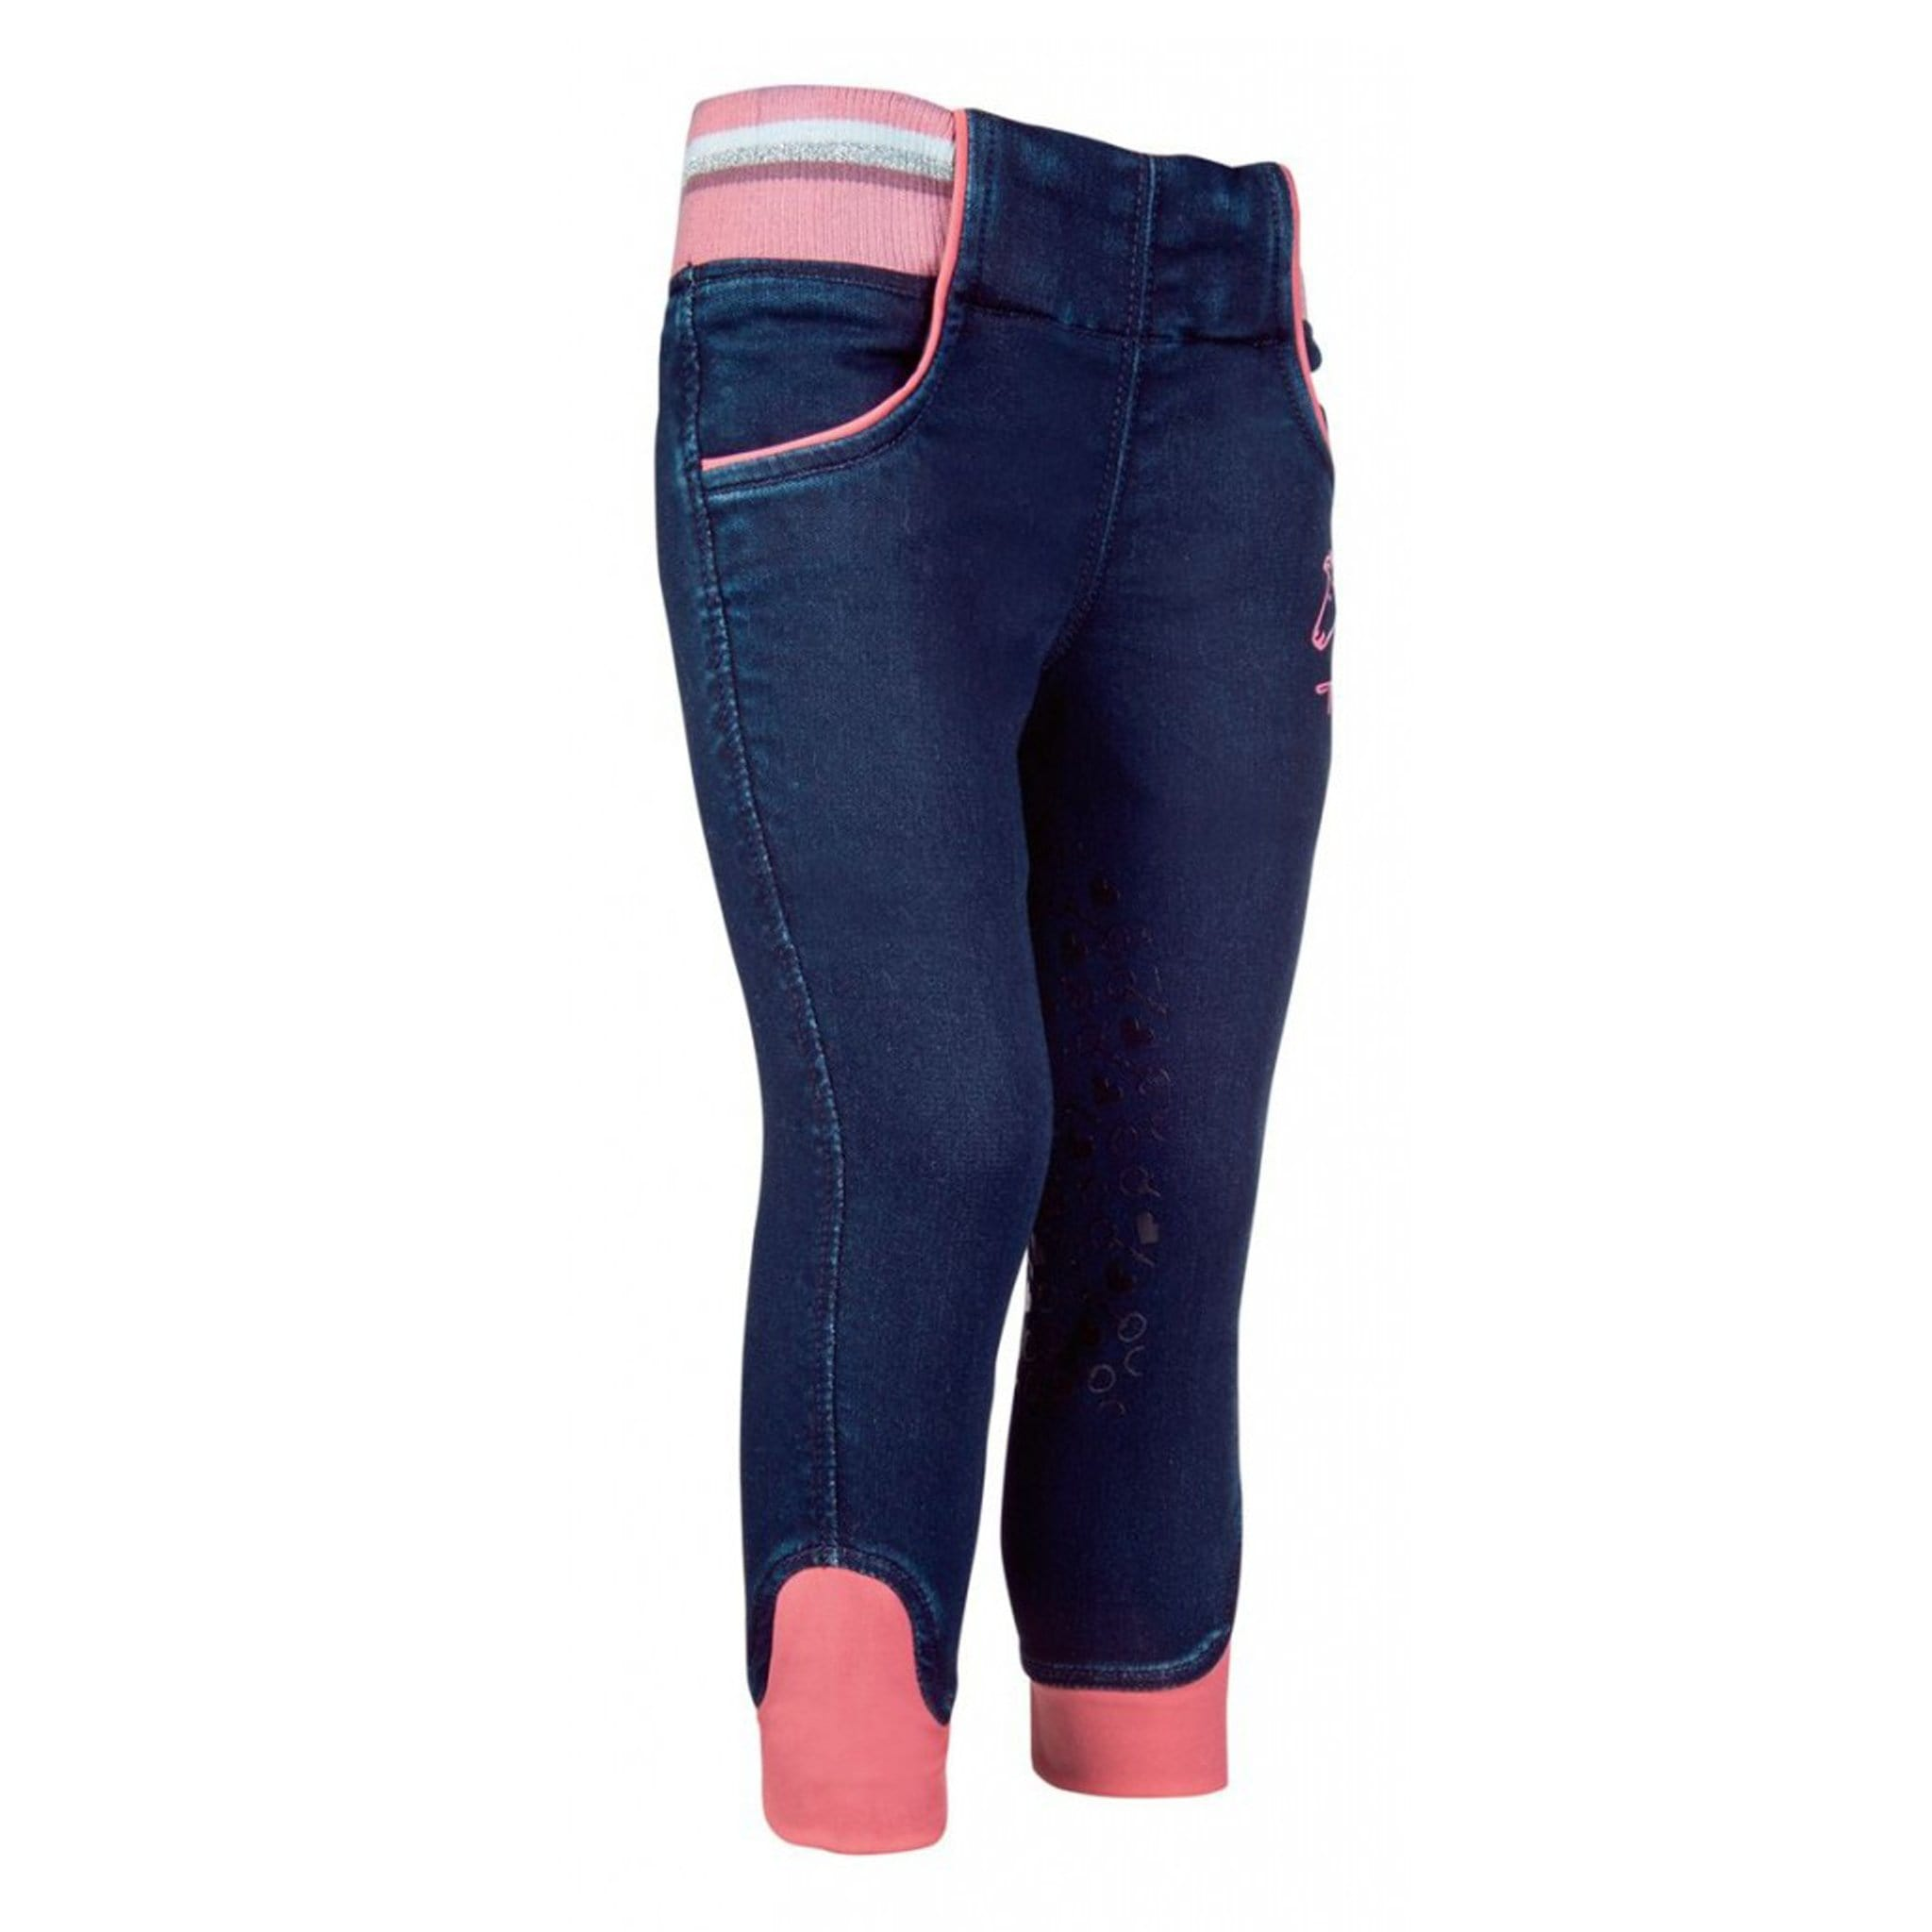 HKM Children's Julia Denim Silicone Knee Patch Riding Tights 11227 Deep Blue Front